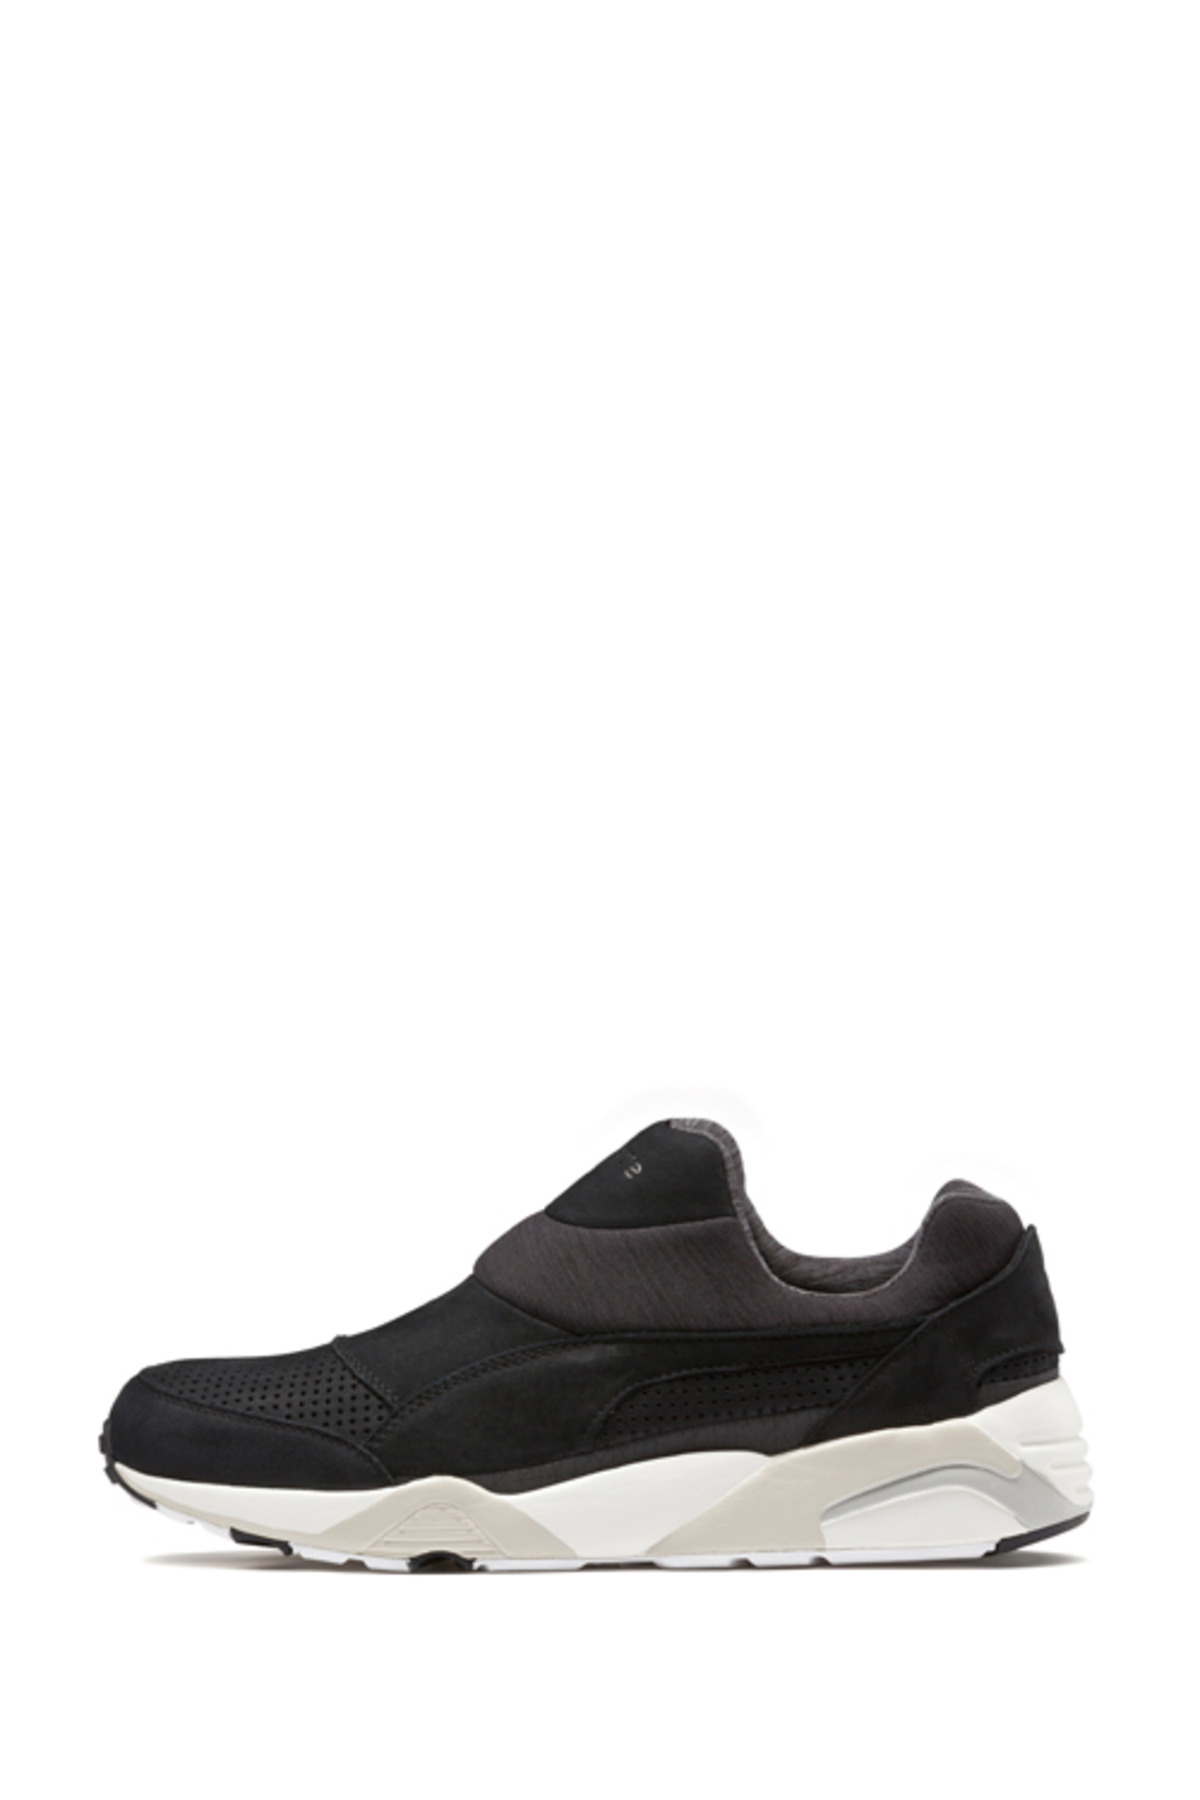 Puma x STAMPD : Trinomic Sock (Black)